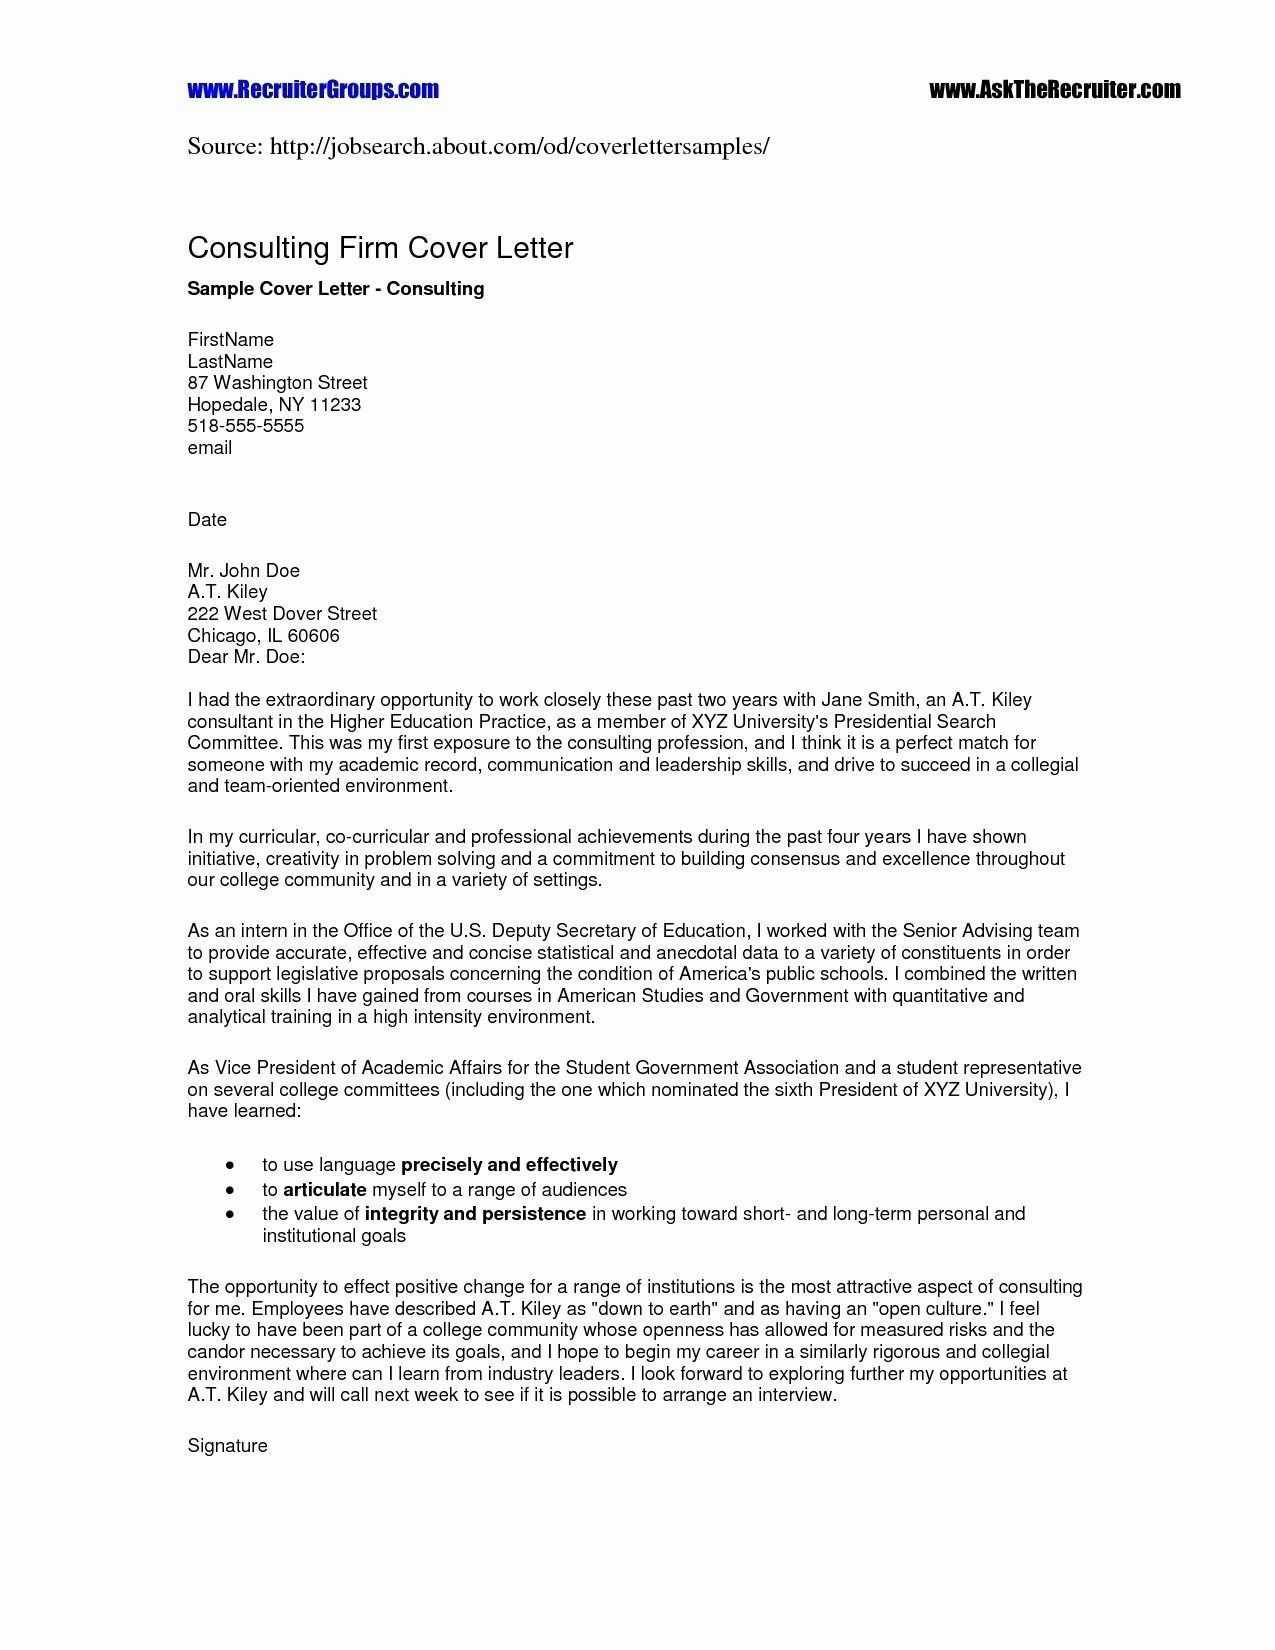 26 Proper Cover Letter Format In 2020 Cover Letter For Resume